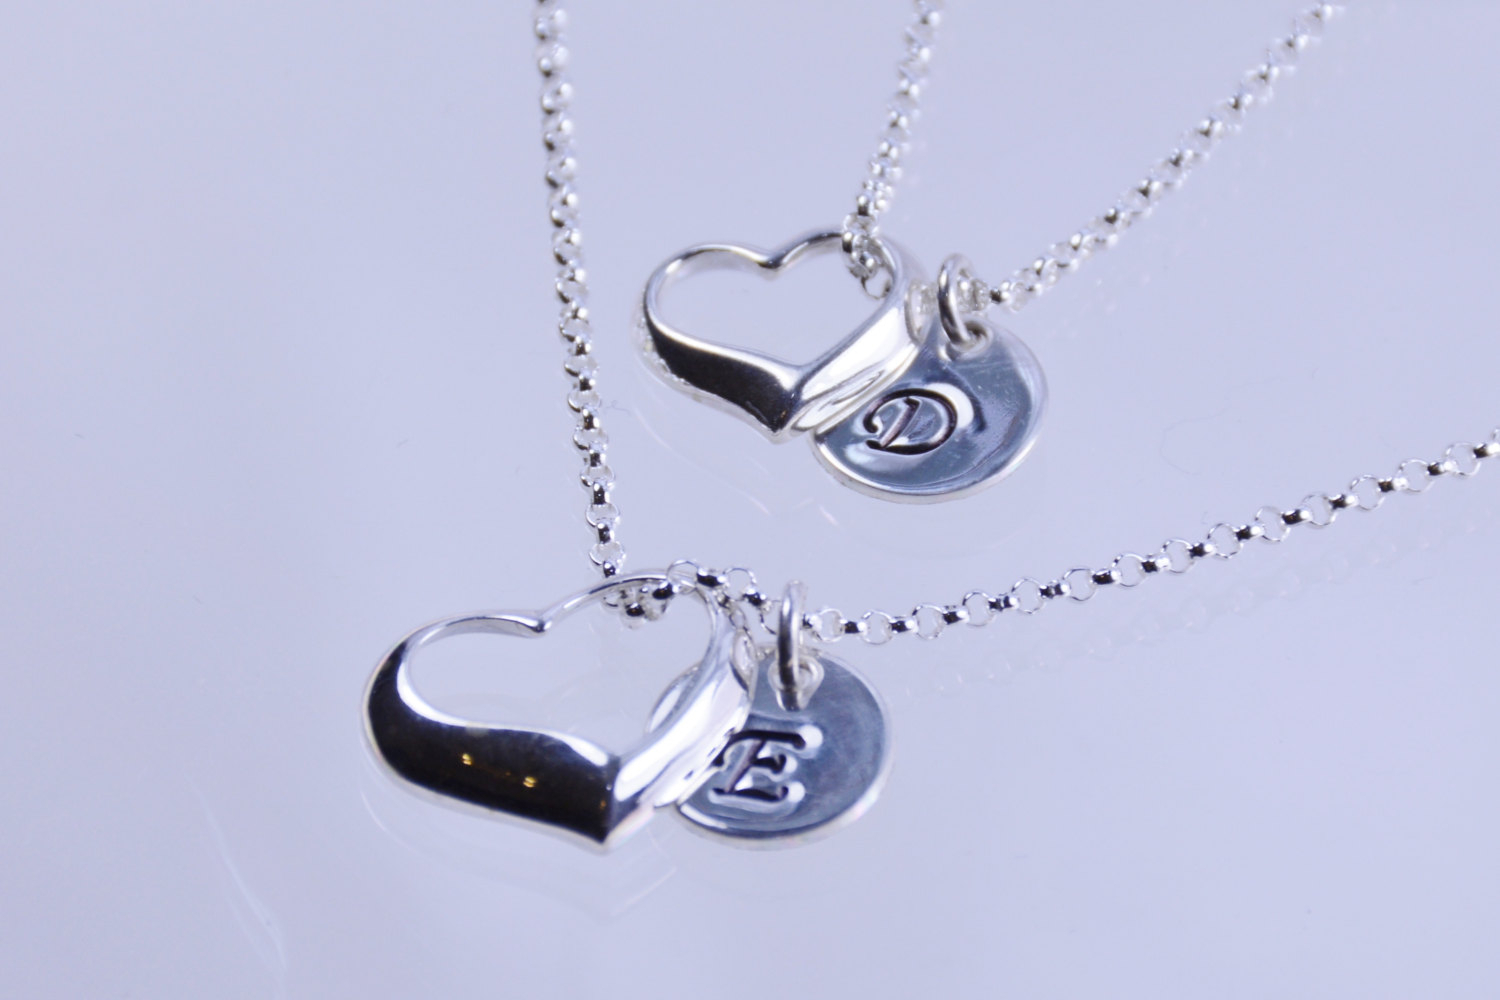 Mother Daughter Jewelry Initial Necklaces With Floating Heart Charm, Open Heart Necklaces For Recent Ribbon Open Heart Necklaces (Gallery 8 of 25)